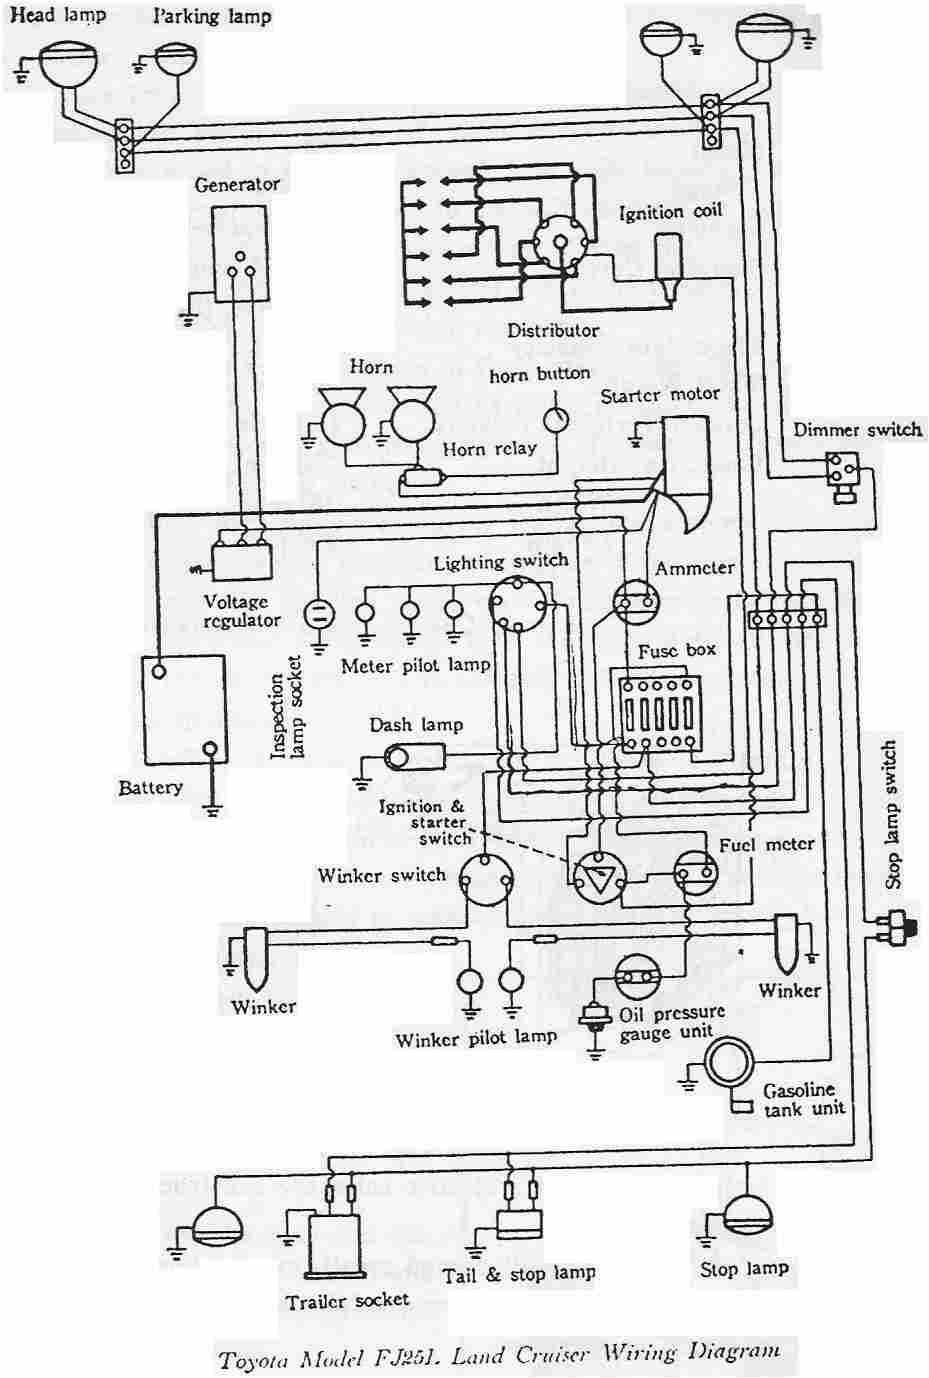 Toyota Land Cruiser FJ25 Electrical Wiring Diagram | All